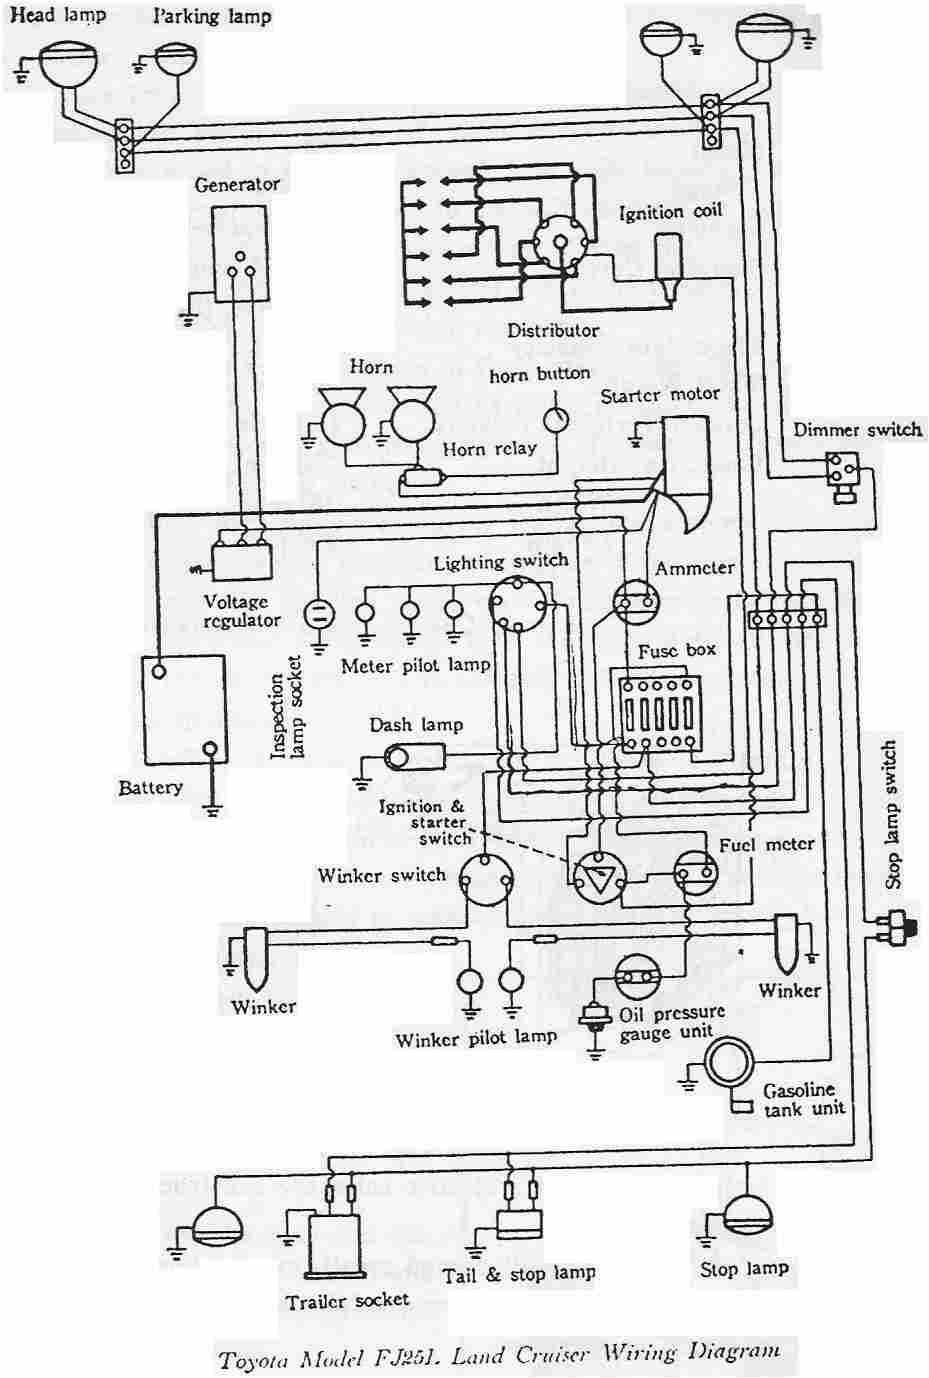 Toyota Land Cruiser FJ25 Electrical Wiring Diagram | All